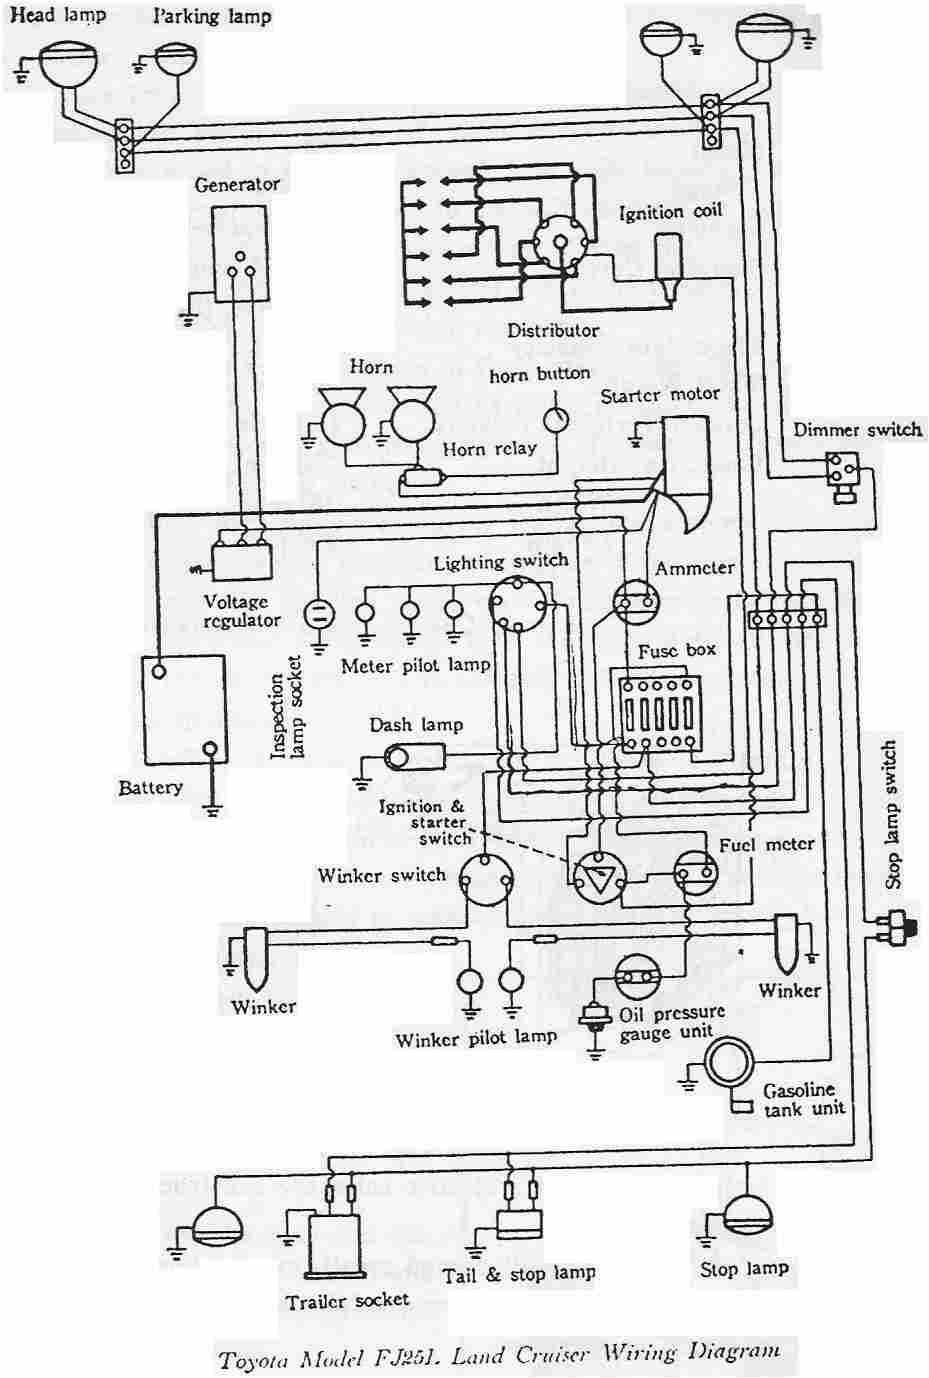 Toyota Land Cruiser FJ25 Electrical Wiring Diagram | All